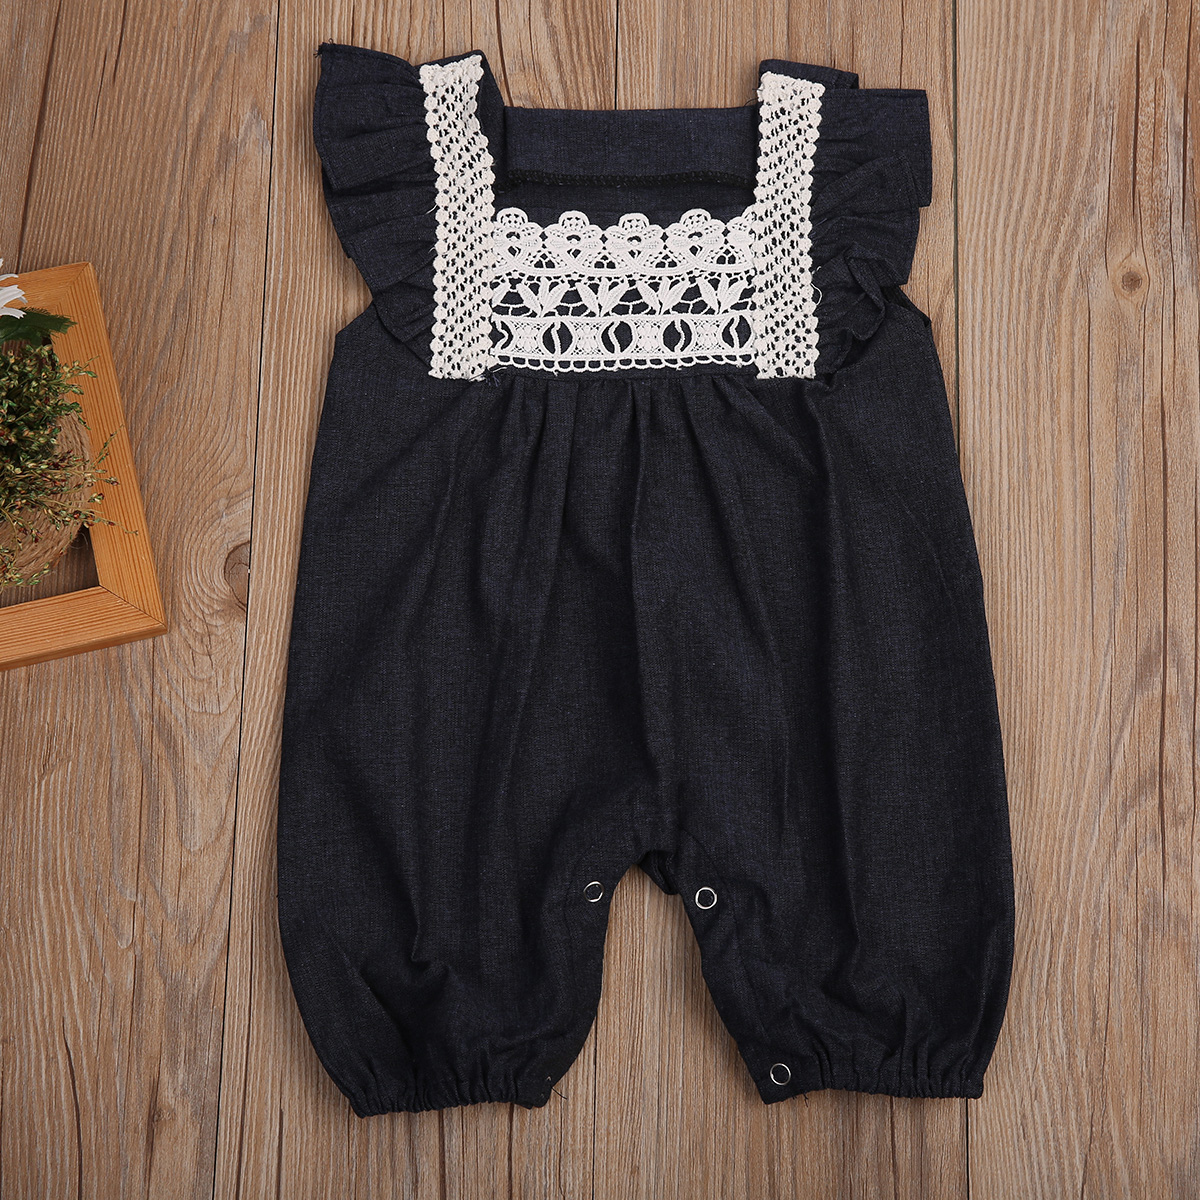 9ca21aa1e Cute Toddler Baby Kids Boy Girls Clothing Denim Lace Rompers Harem ...